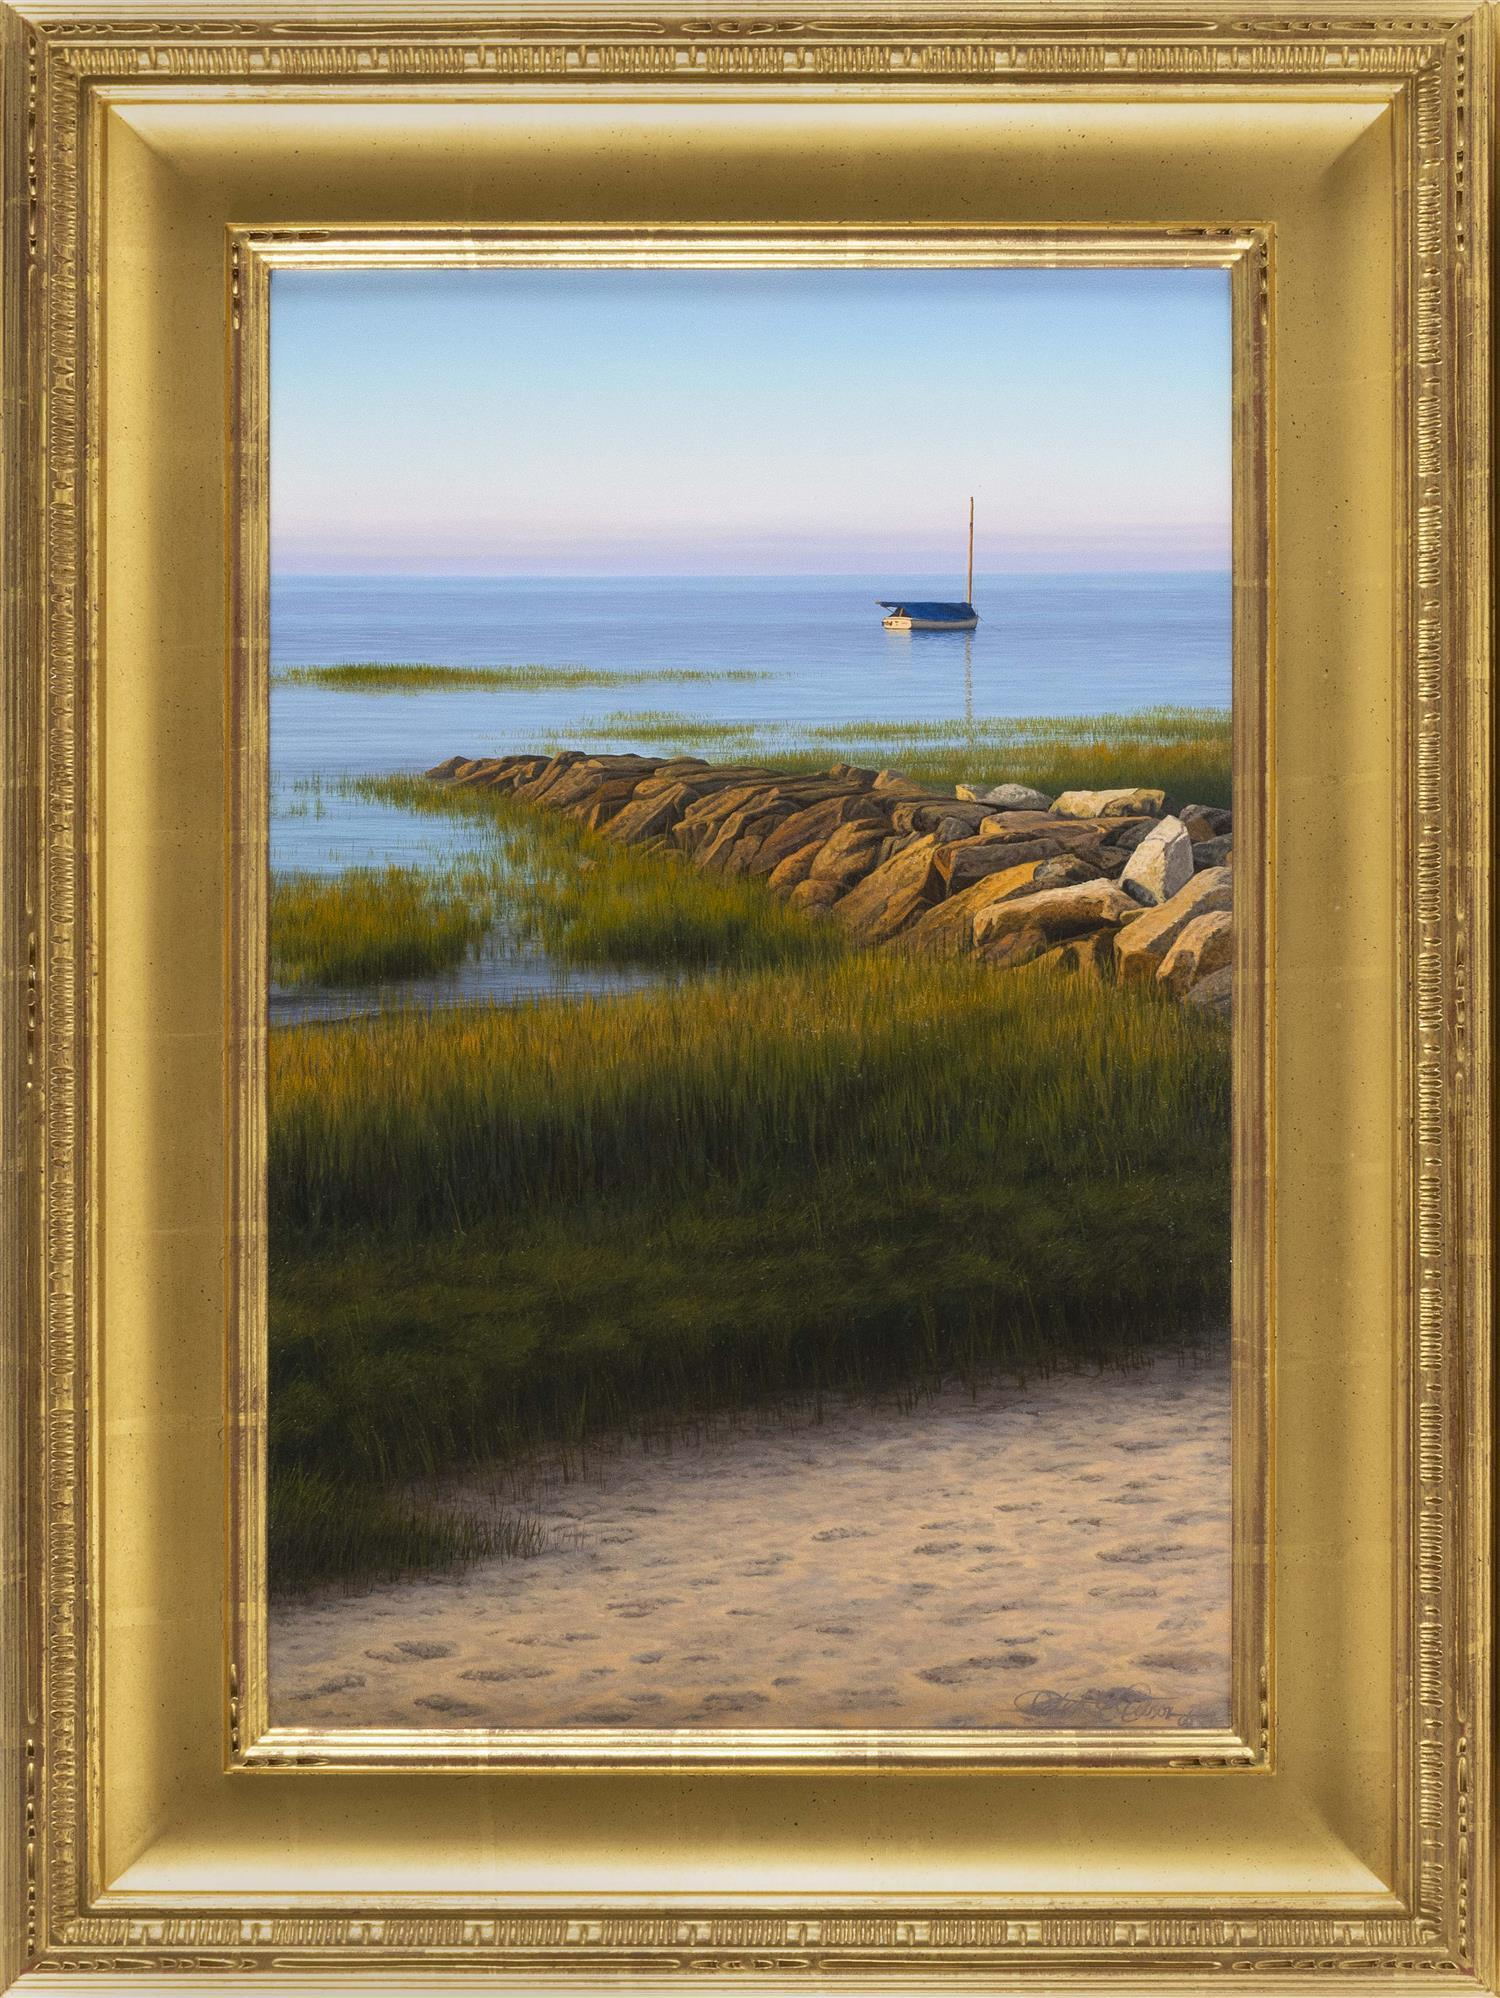 "PATRICK E. KITSON, Pennsylvania/New Jersey, b. 1970, ""In the Air""., Oil on panel, 24"" x 16"". Framed 32.5"" x 24""."